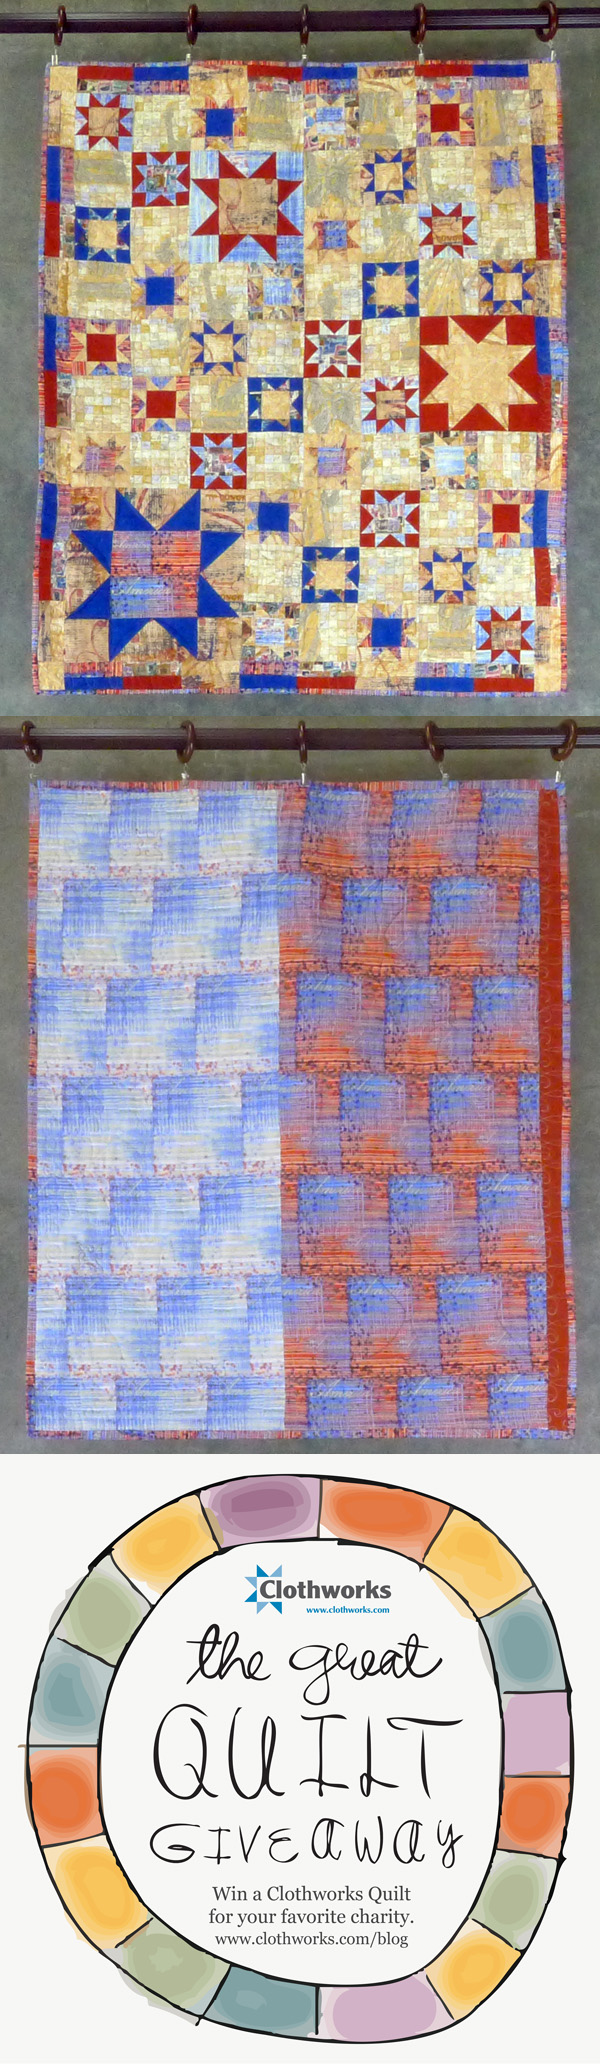 Repin this to help me win quilts to raffle off to feed  hungry children! Fabric collection: America by Karen Roti for Clothworks. #Clothworksquiltgiveaway